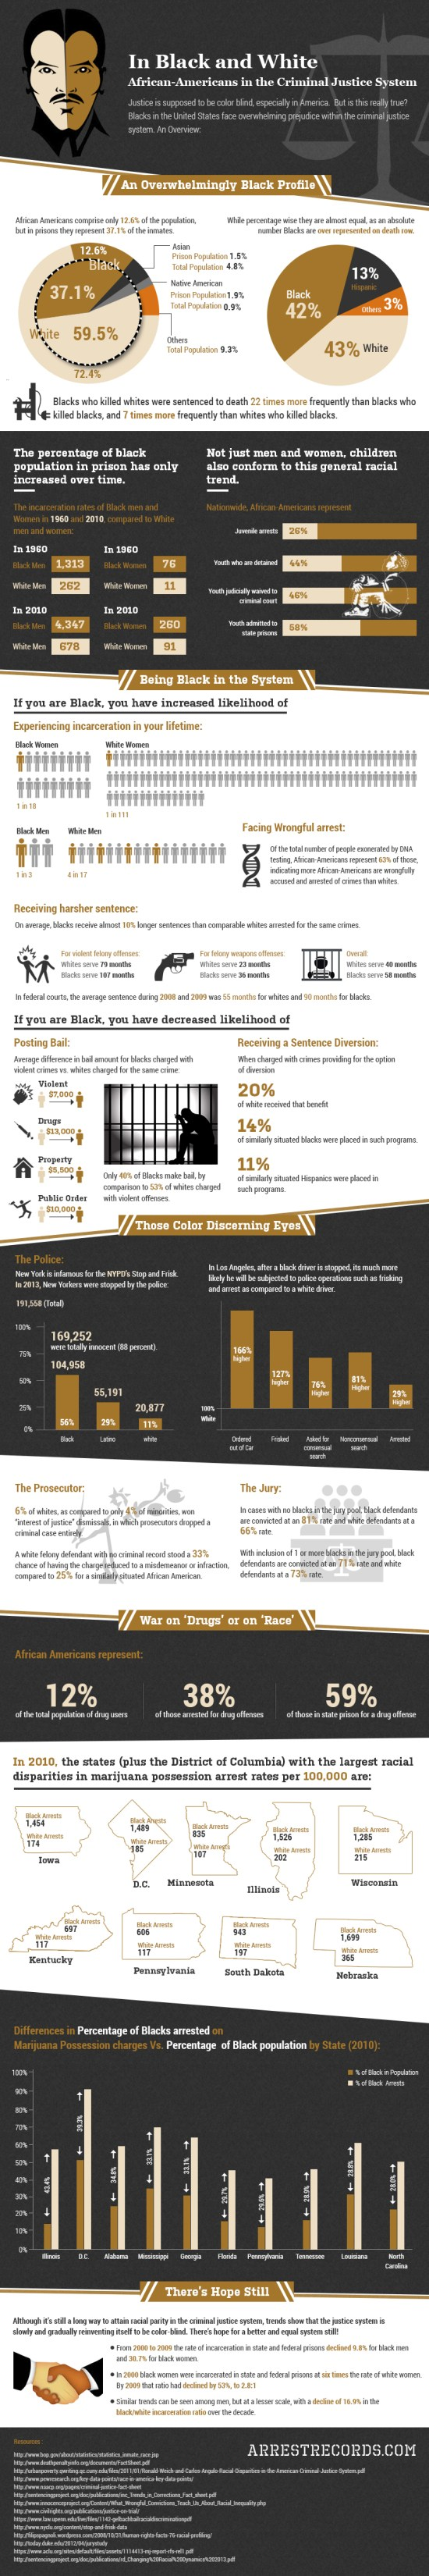 racism and criminal justice system